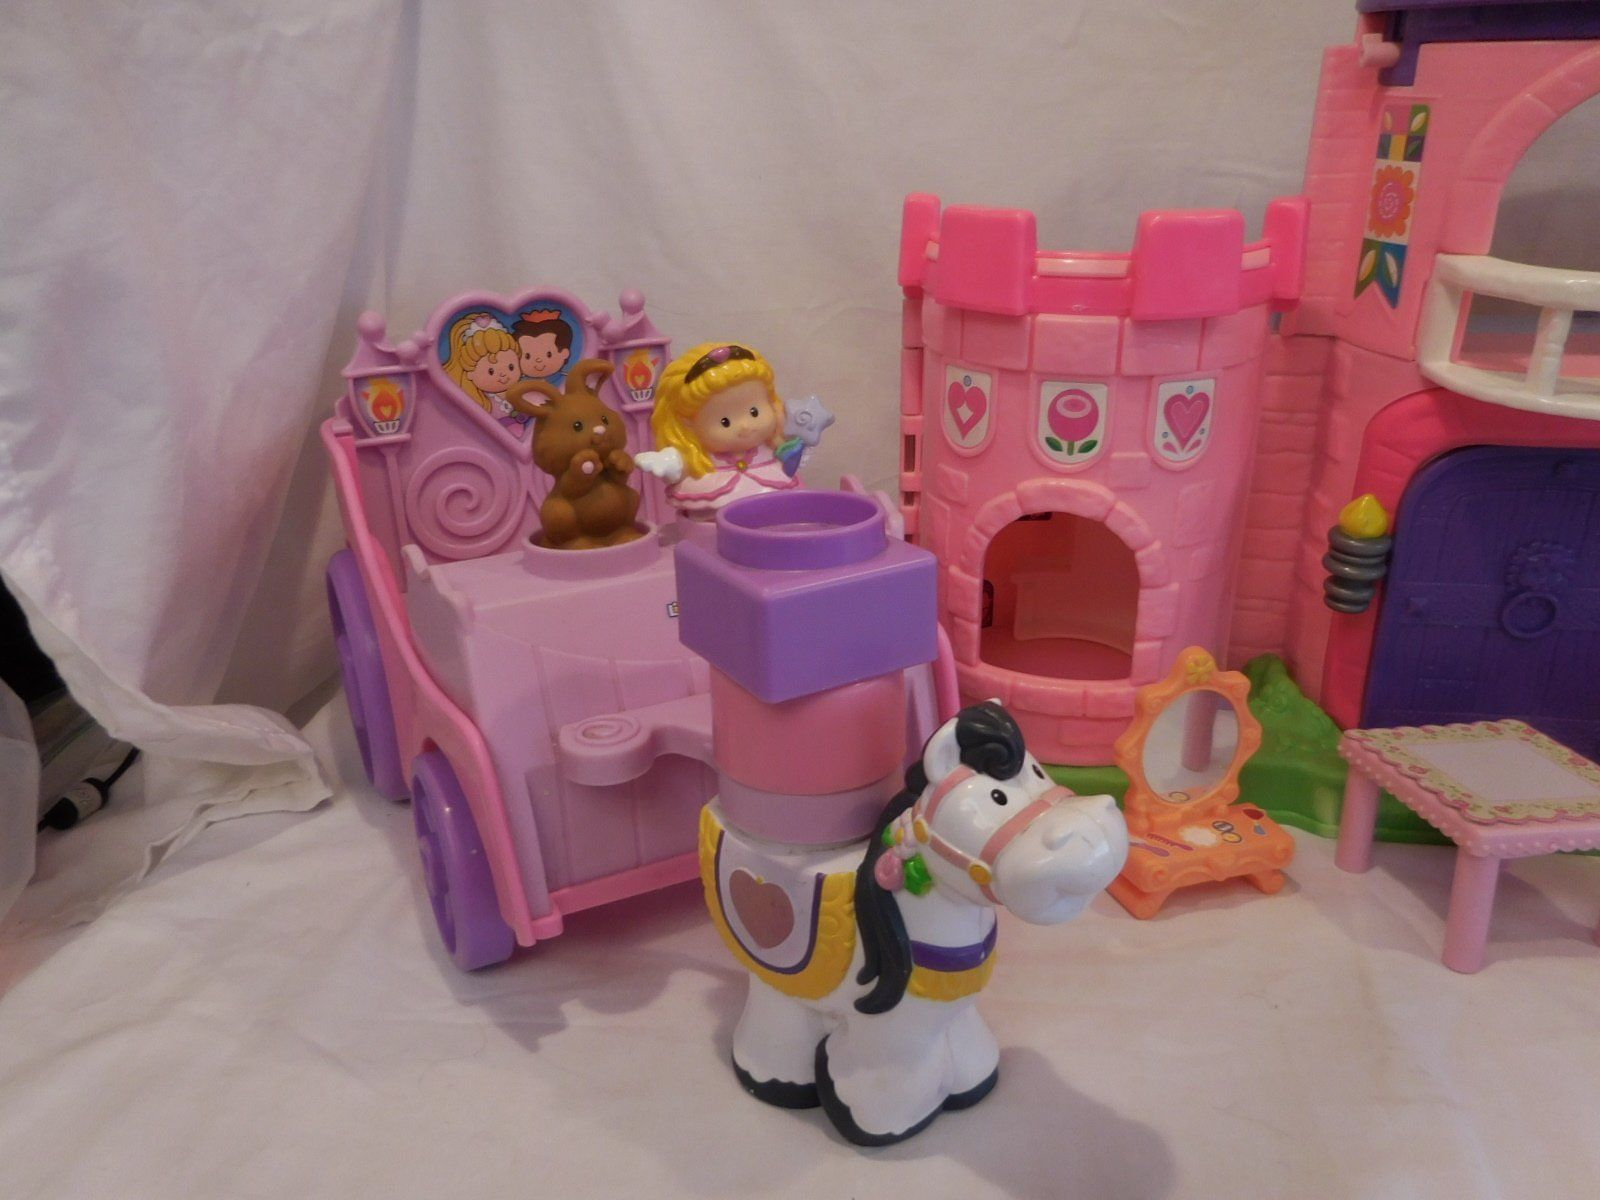 Fisher Price Little People Pink Castle + Play 'N Go Castle + Princess Carriage image 2